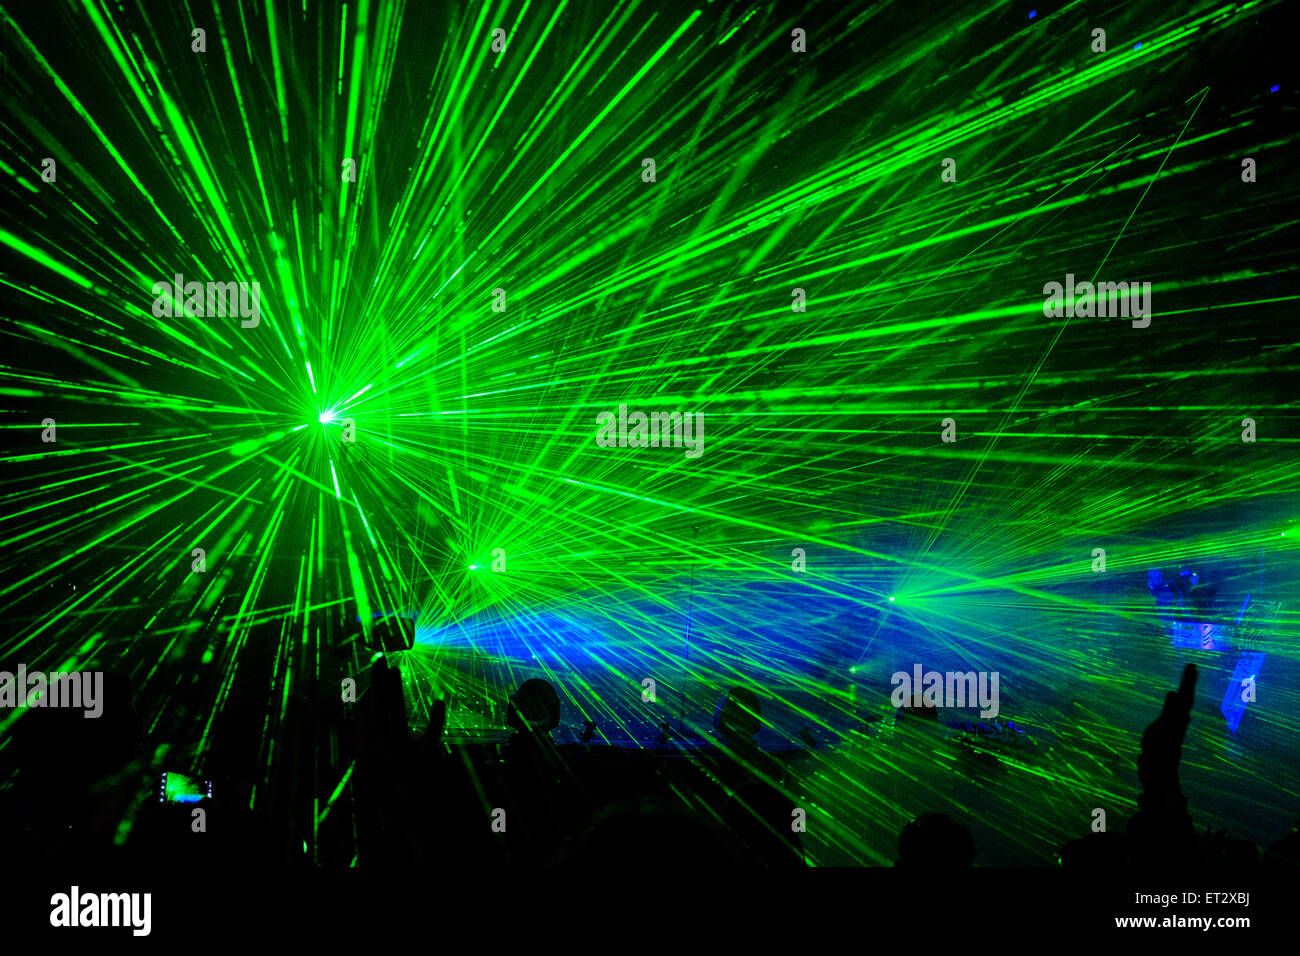 Laser show during Pet Shop Boys 'Electric Tour'. At Festival No.6 in Portmeirion, Wales - Stock Image